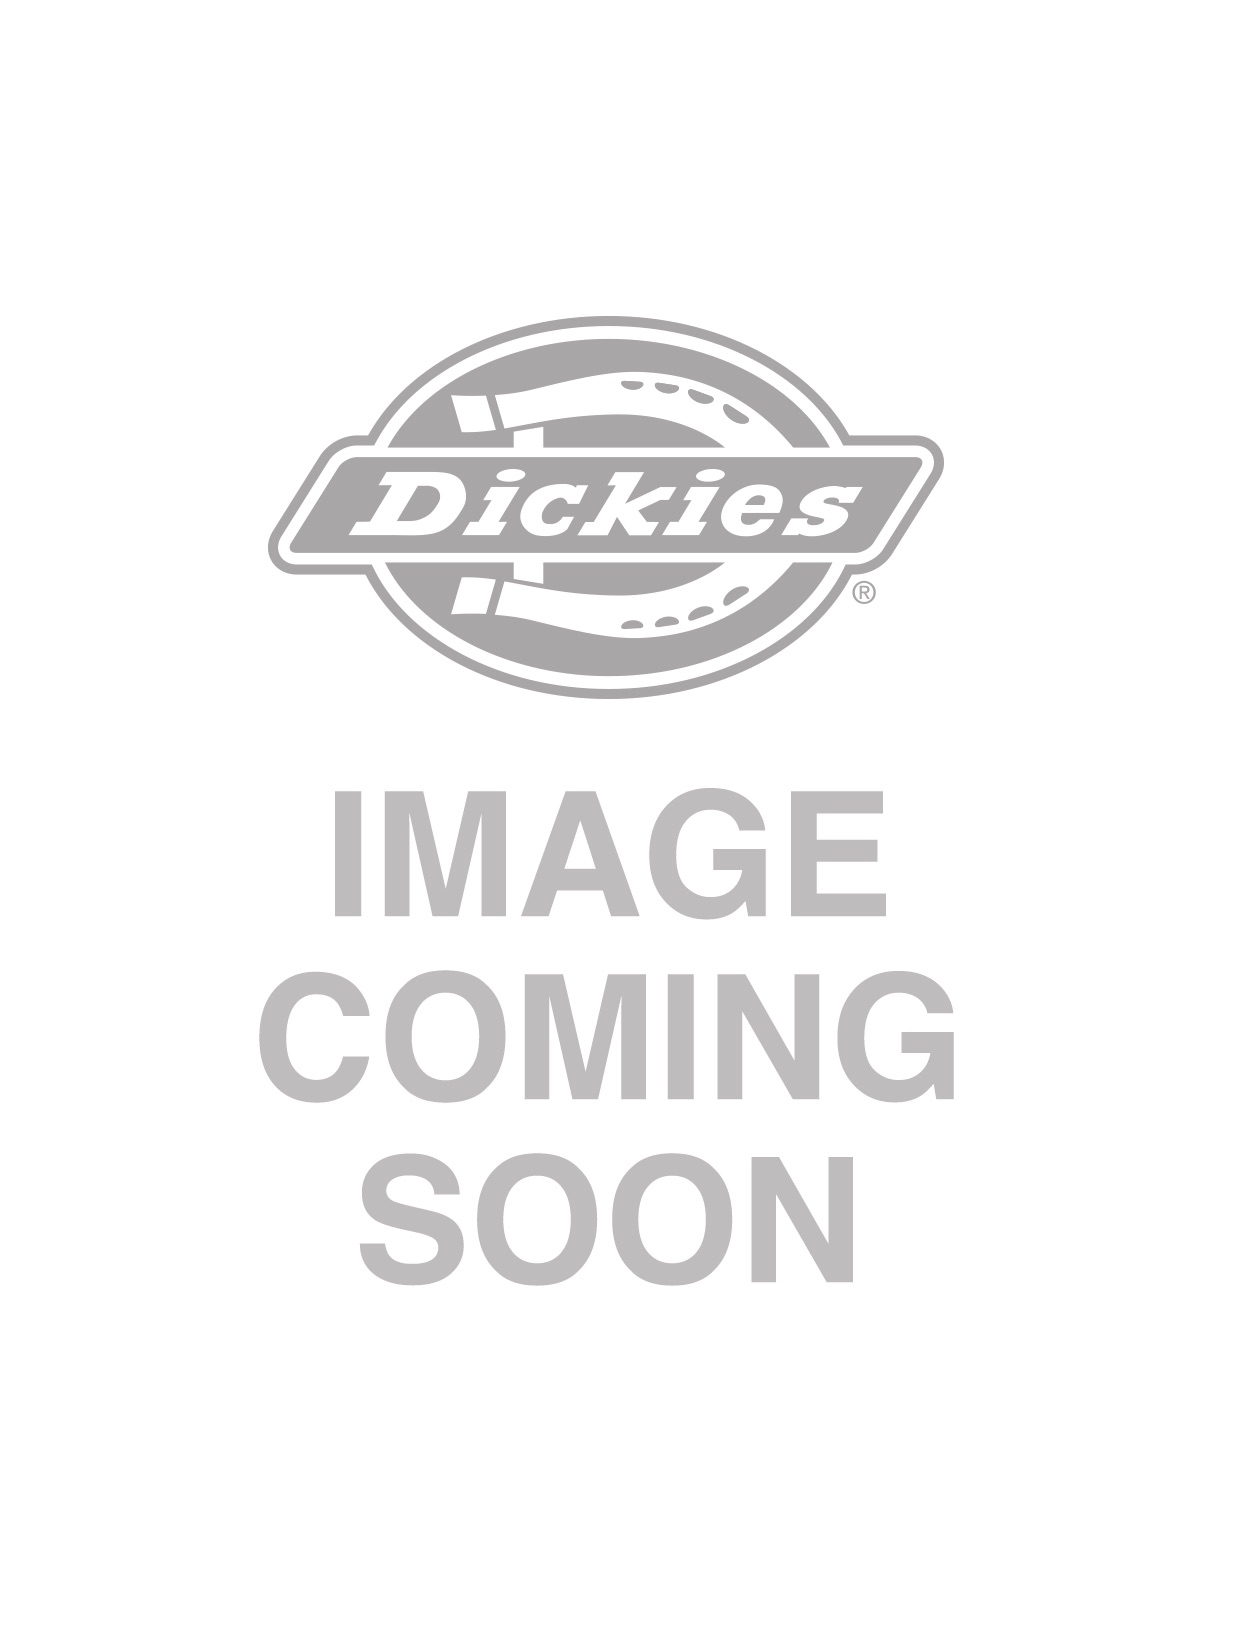 Dickies Prestonburg Shirt